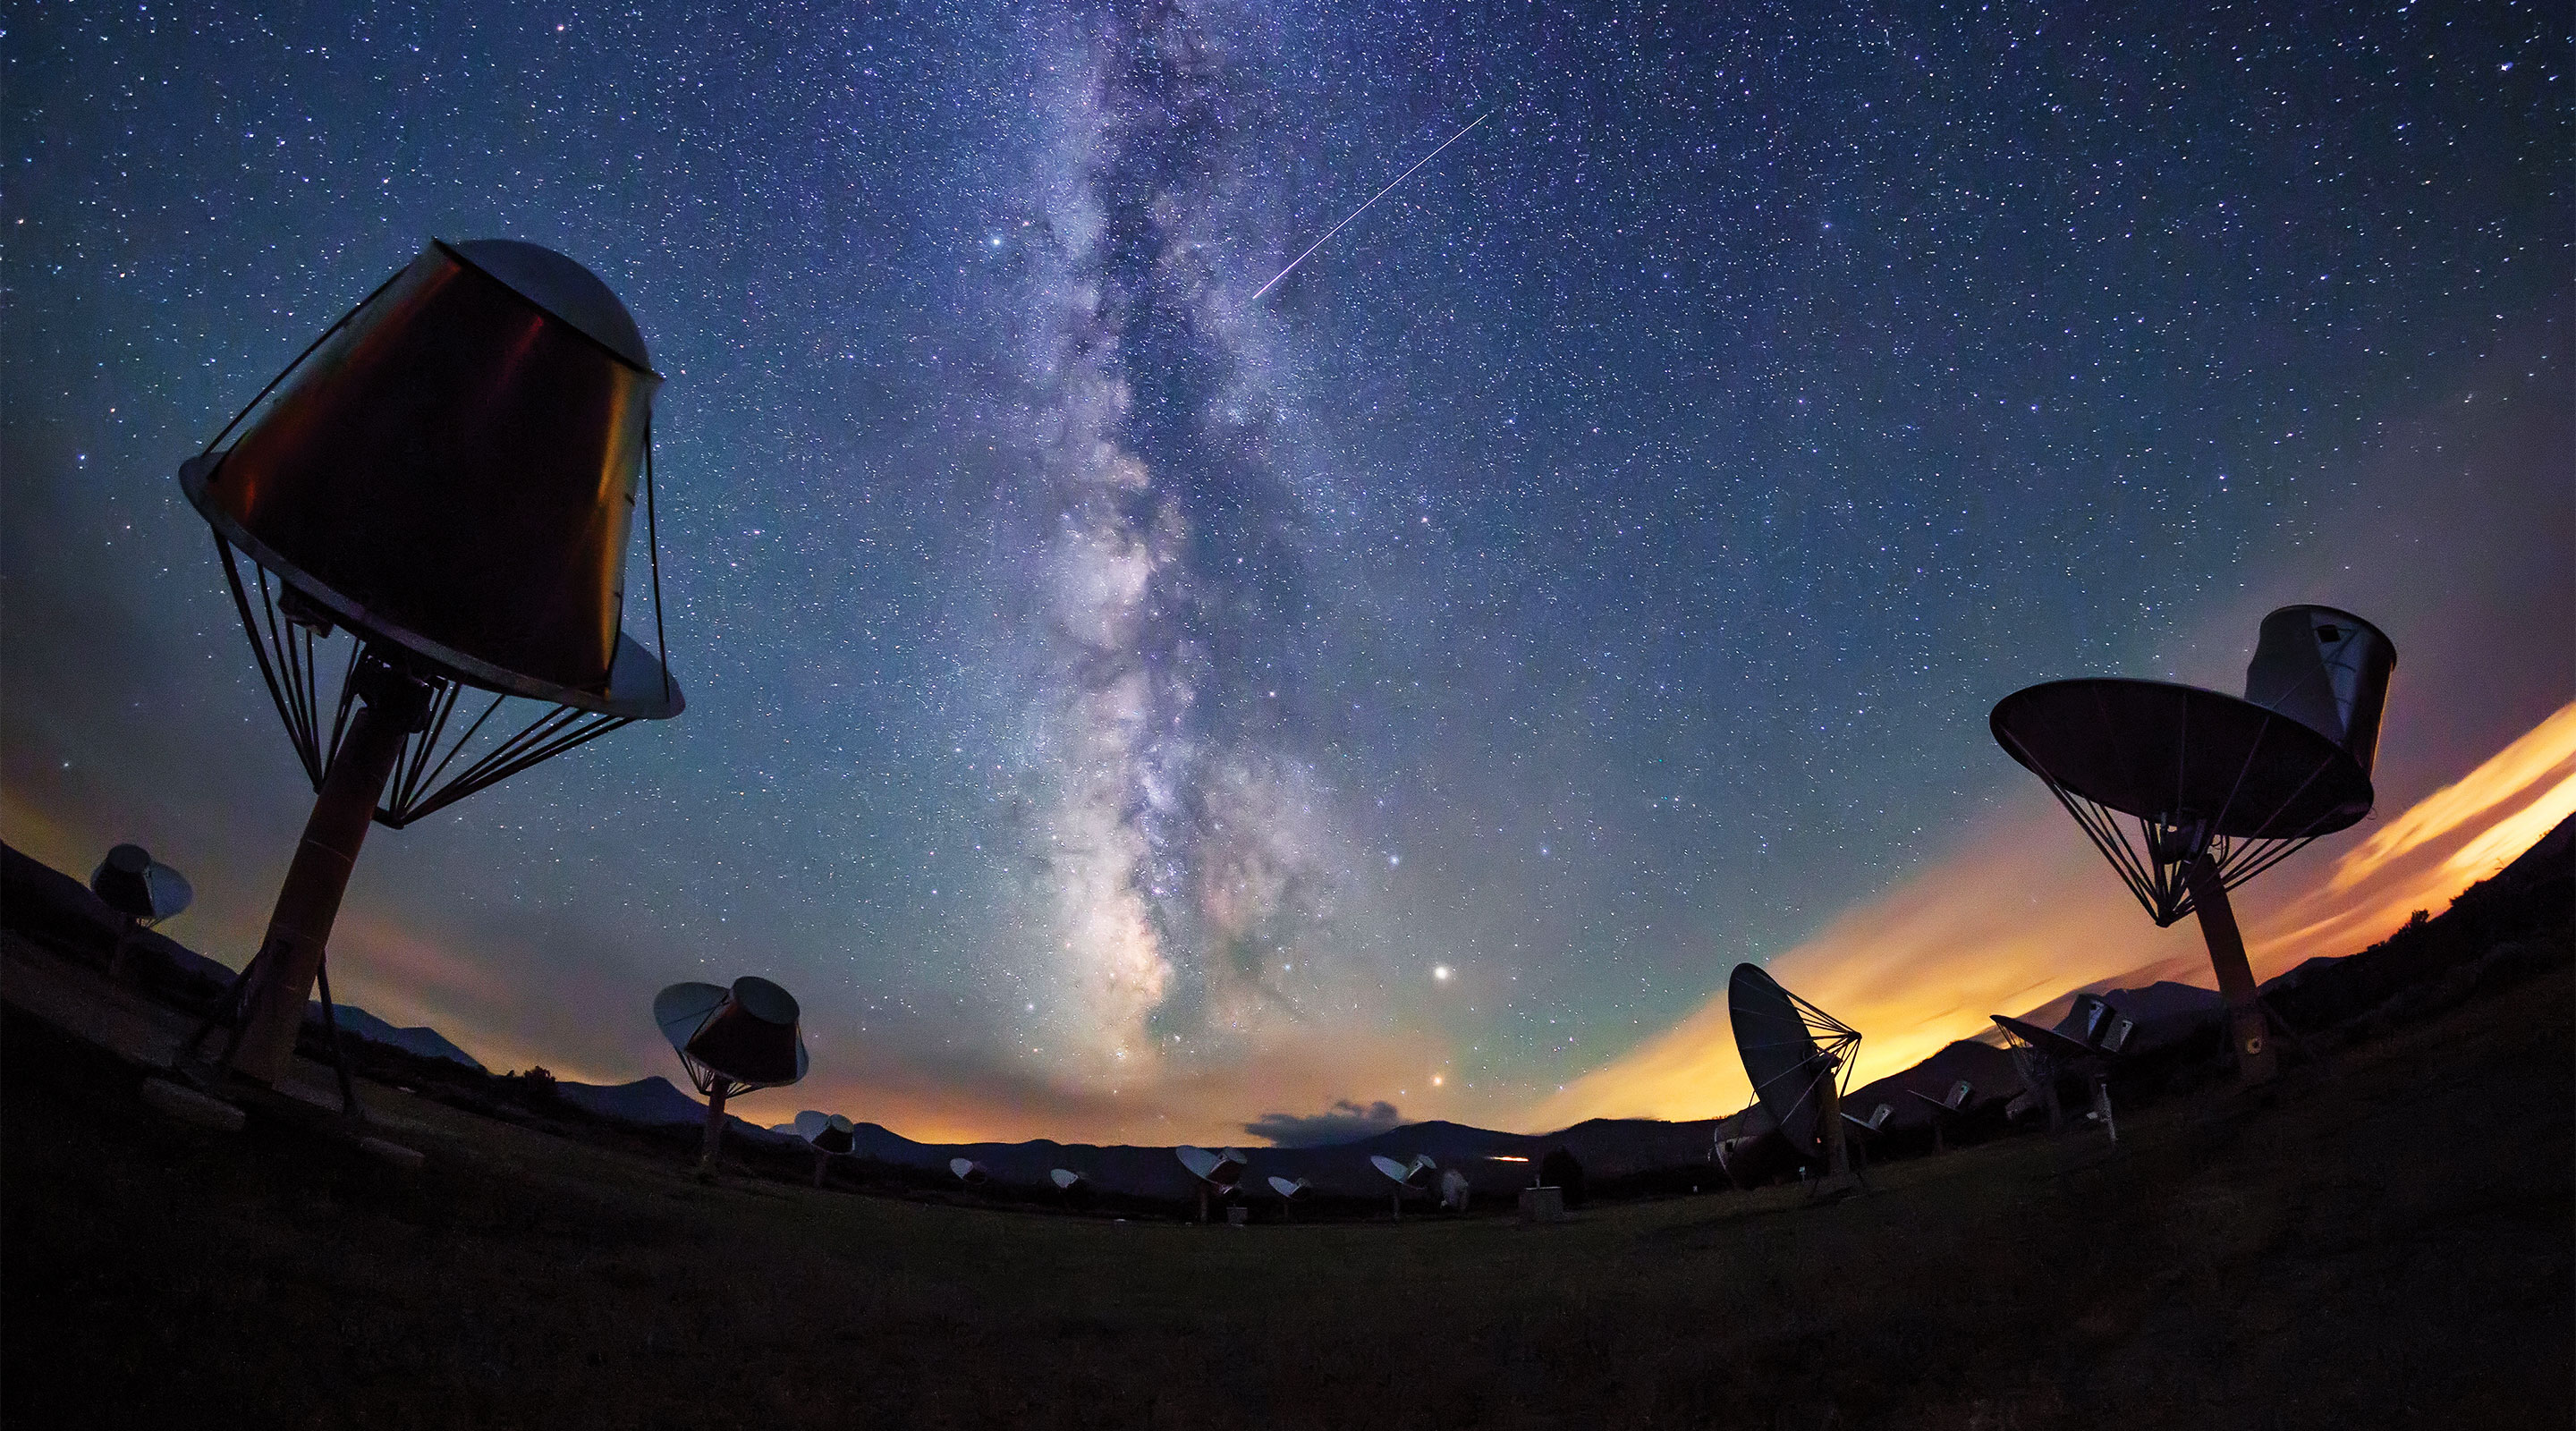 Photo of radio telescopes at the Allen Telescope Array with a starry sky featuring the Milky Way in the background.